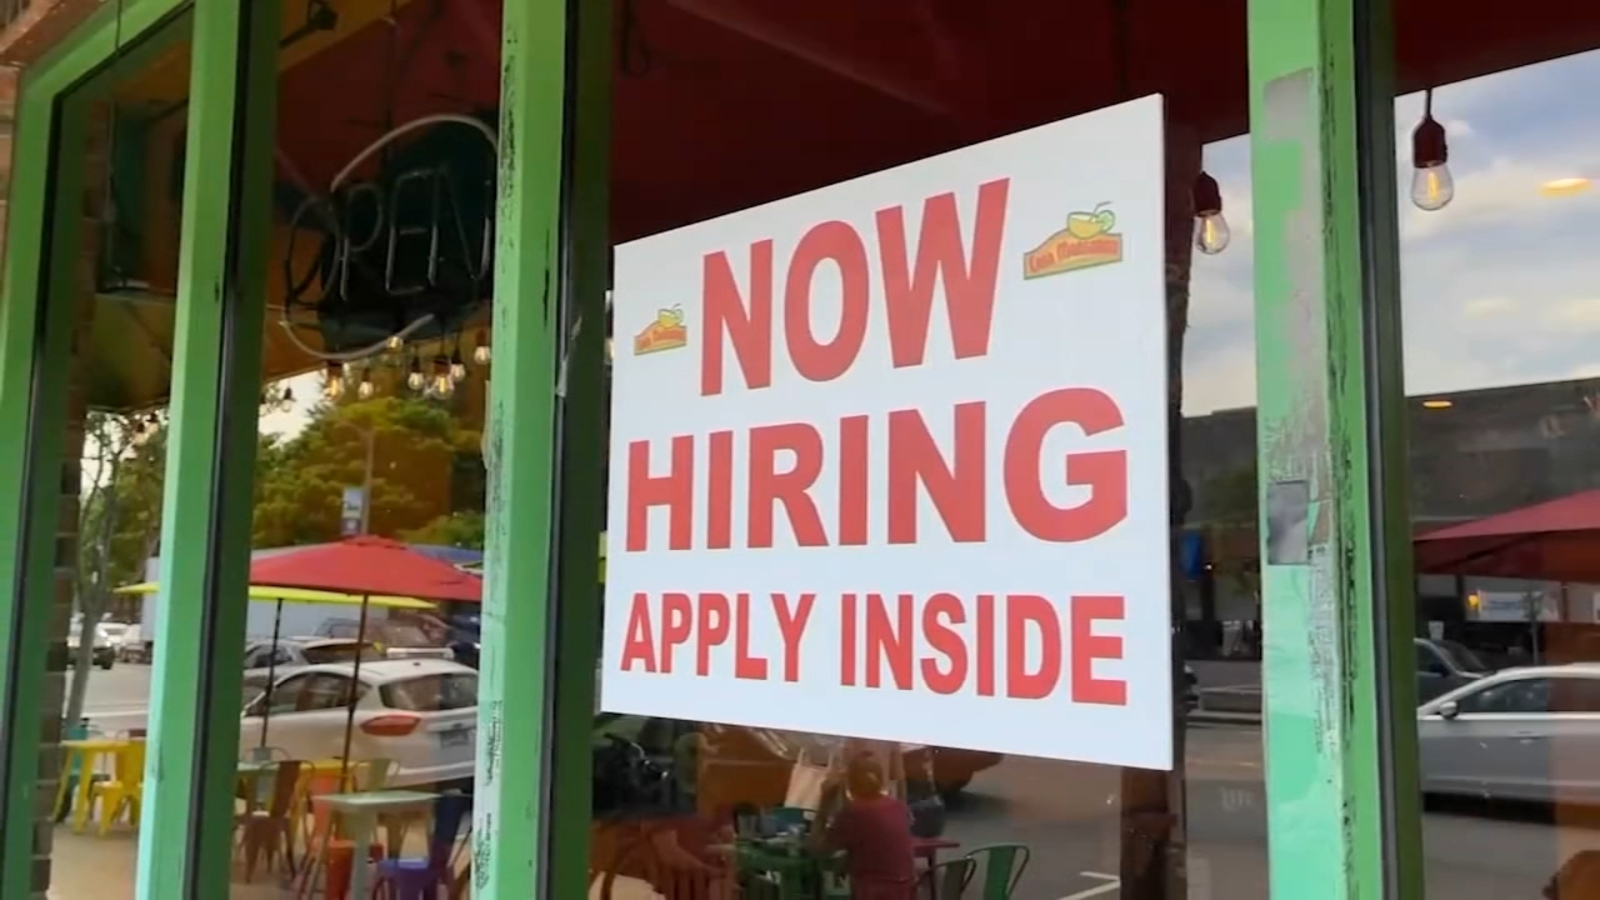 Chicago area resturants desparetly look to hire as Illinois reopening plan moves forward; White House touts job growth